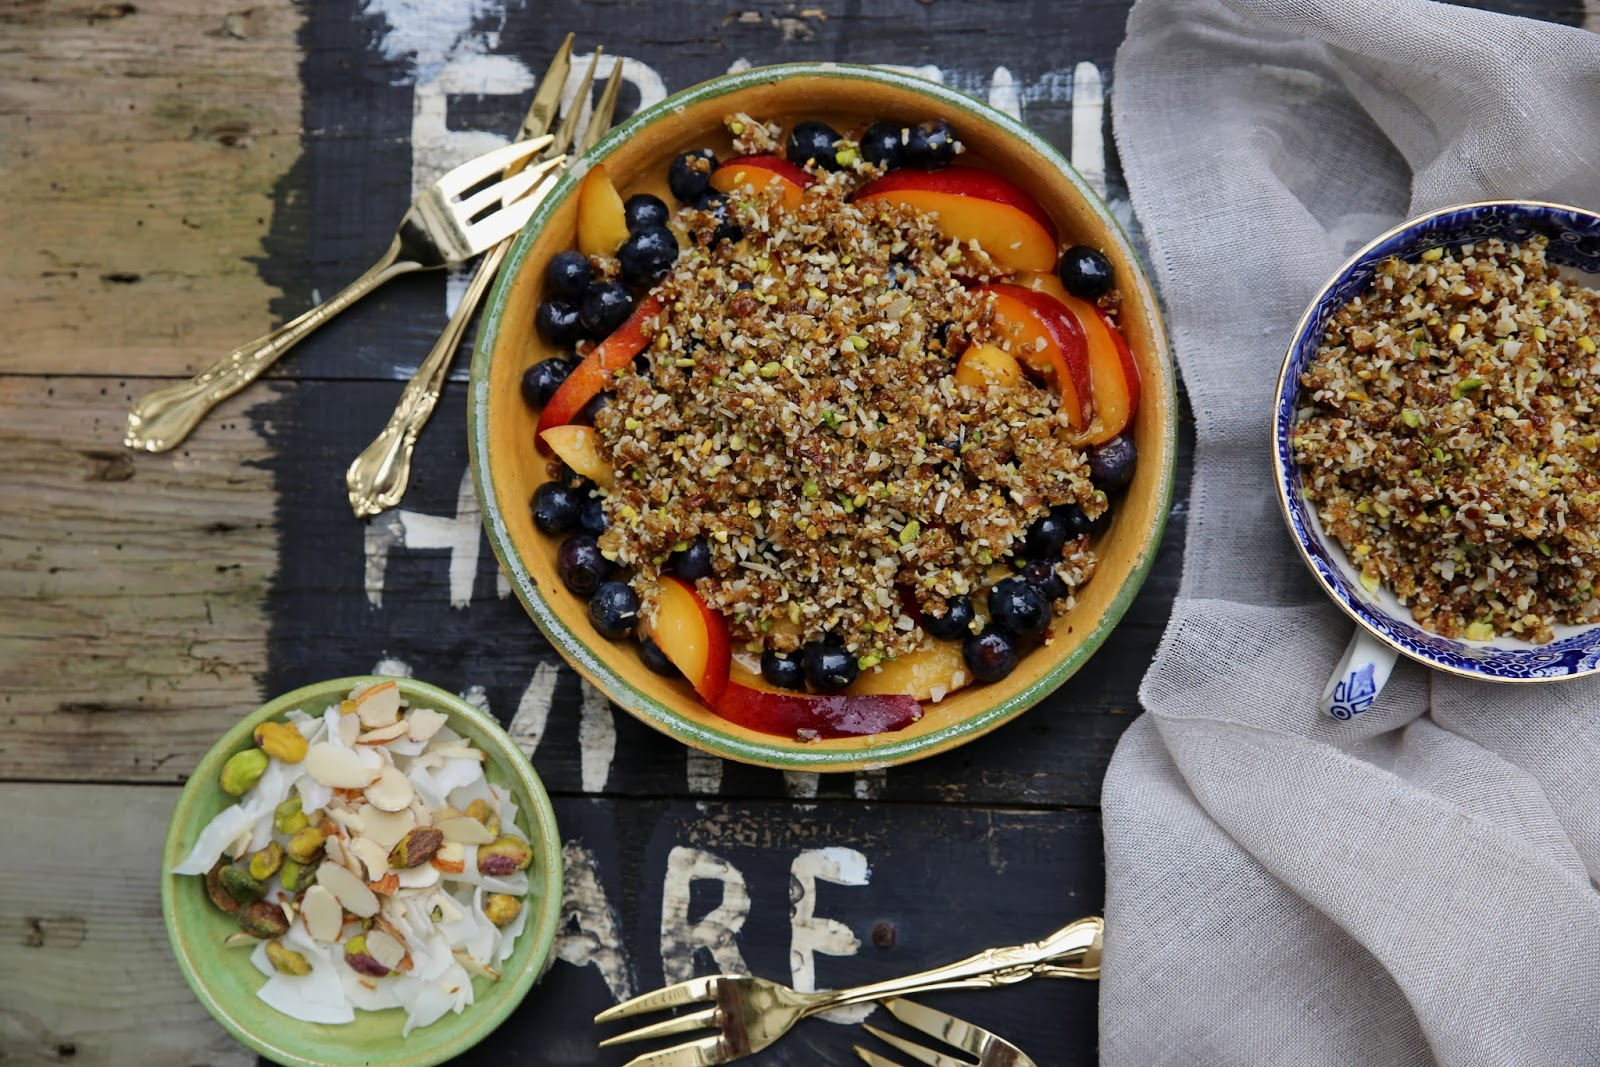 Gluten-Free Raspberry, Blueberry And Pistachio-Almond Crumble Recipes ...